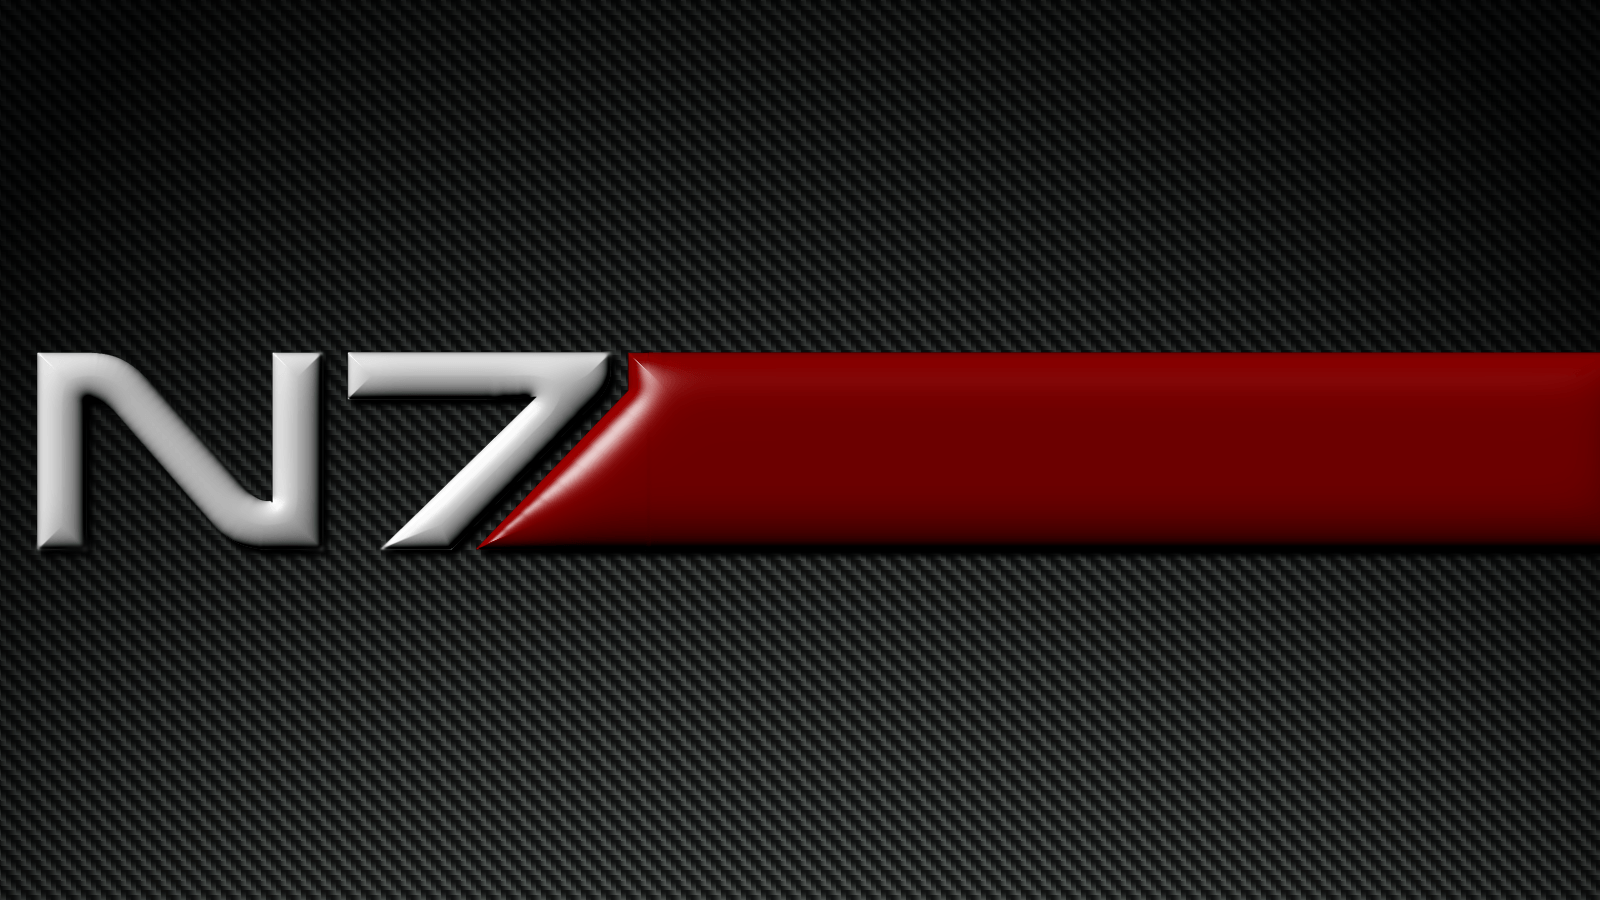 Mass Effect N7 Carbon Fiber Wallpapers by Zurganus